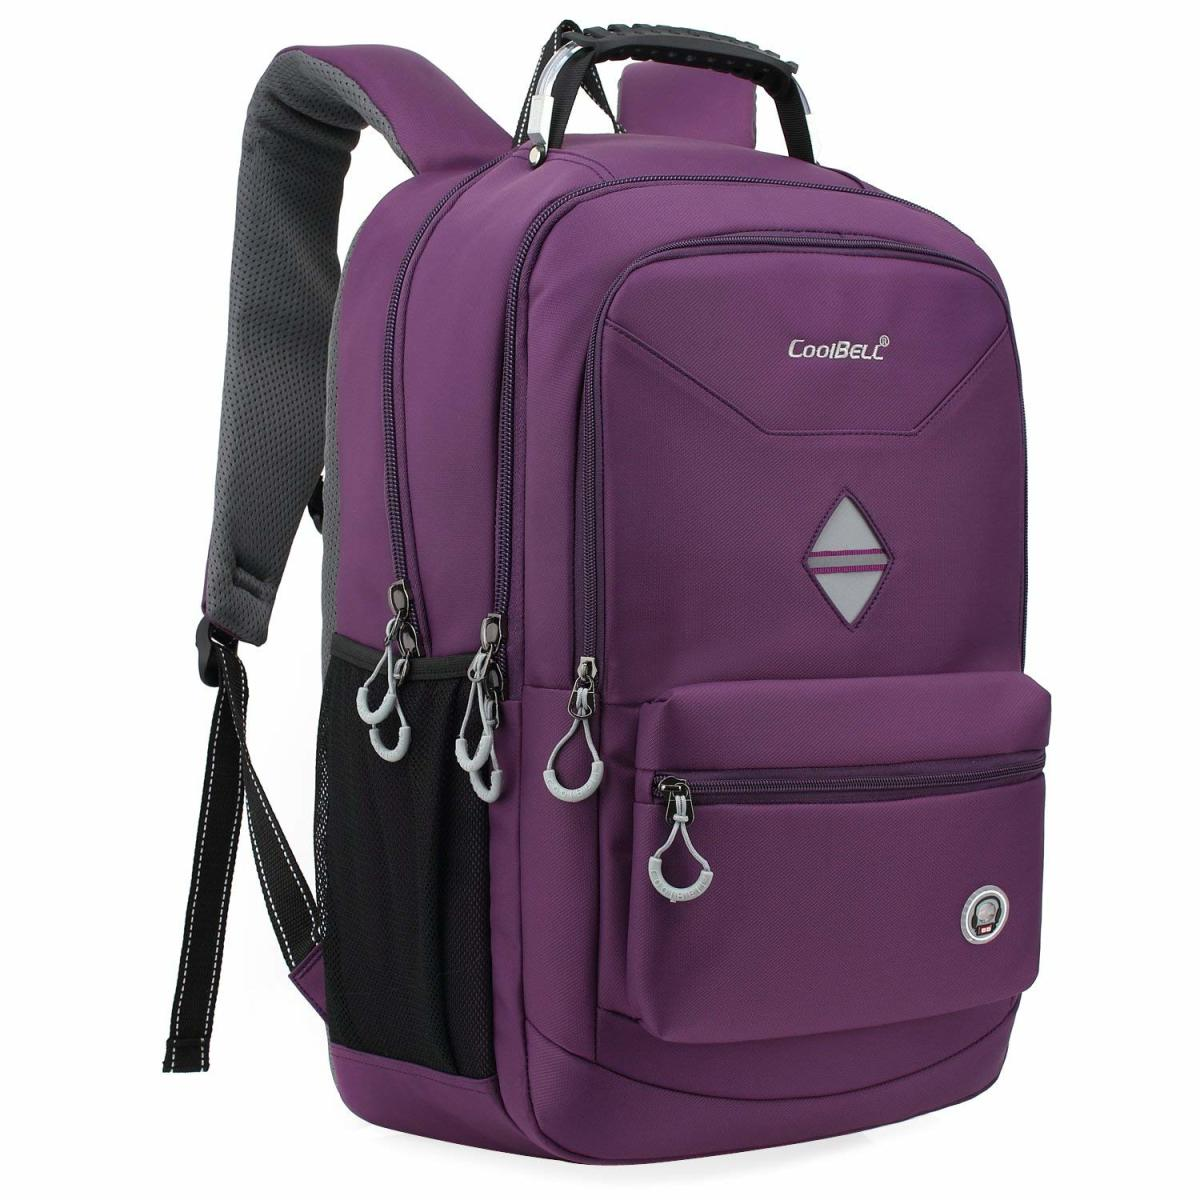 CoolBELL 18.4 Inch Backpack Laptop Bag Travel Rucksack Water-resistant Hiking Knapsack Protective Day Pack (Unisex) Fits 15-18.4 Inch Laptop Dell/HP/Lenovo/Macbook/Acer/Women